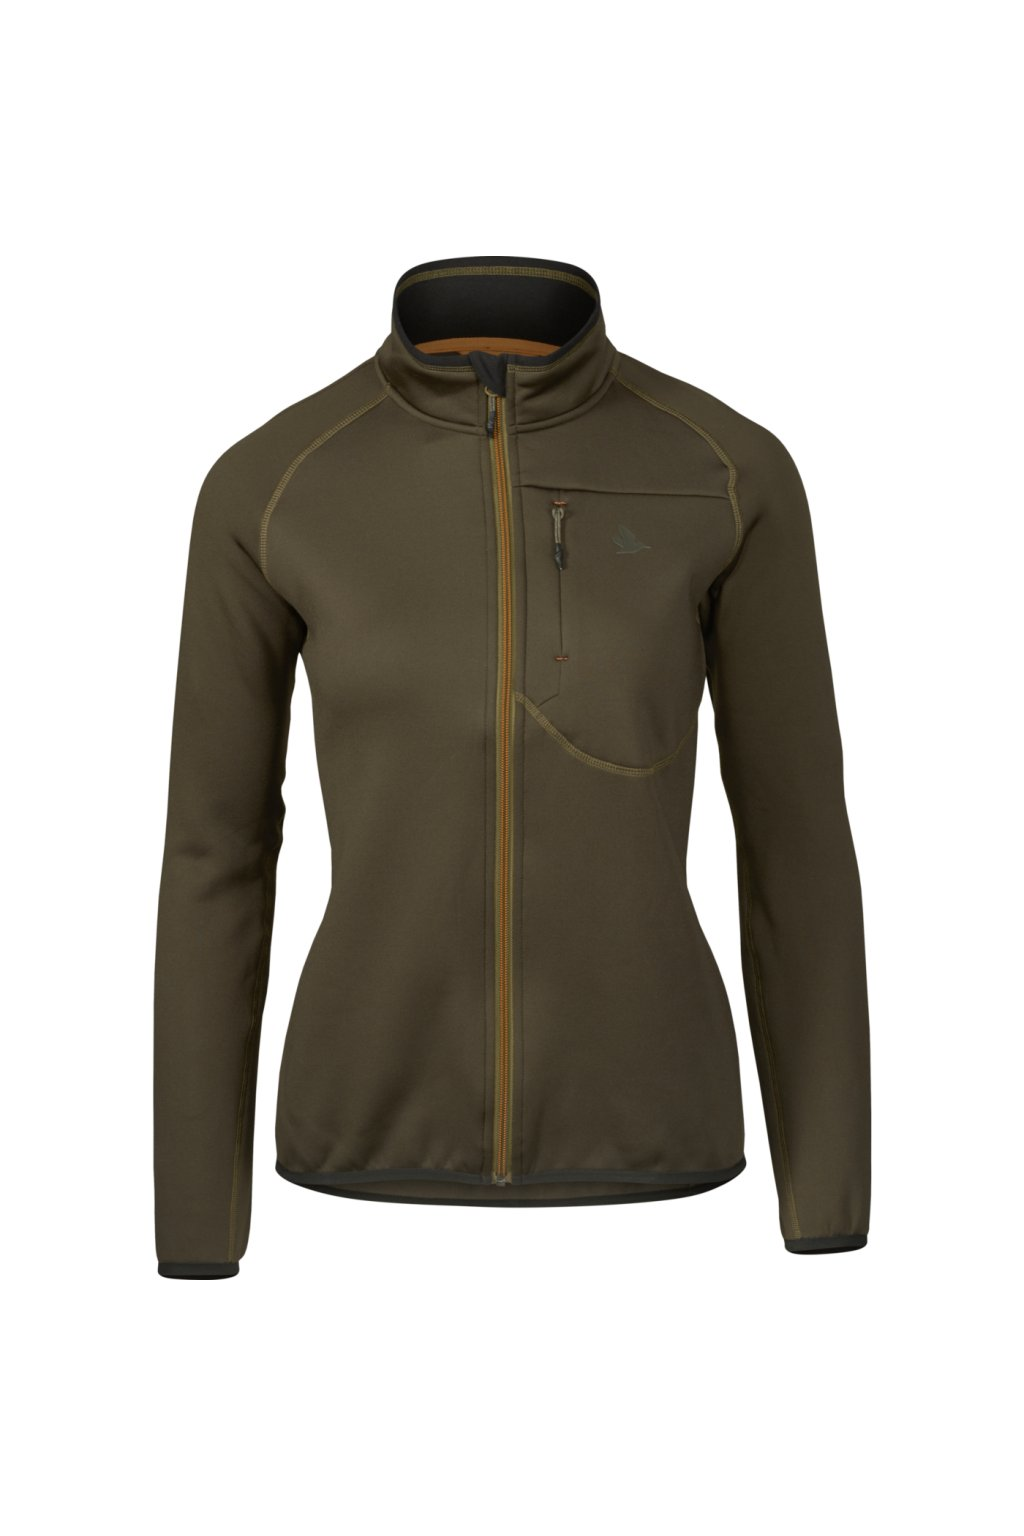 Seeland - Hawker full zip fleece Women